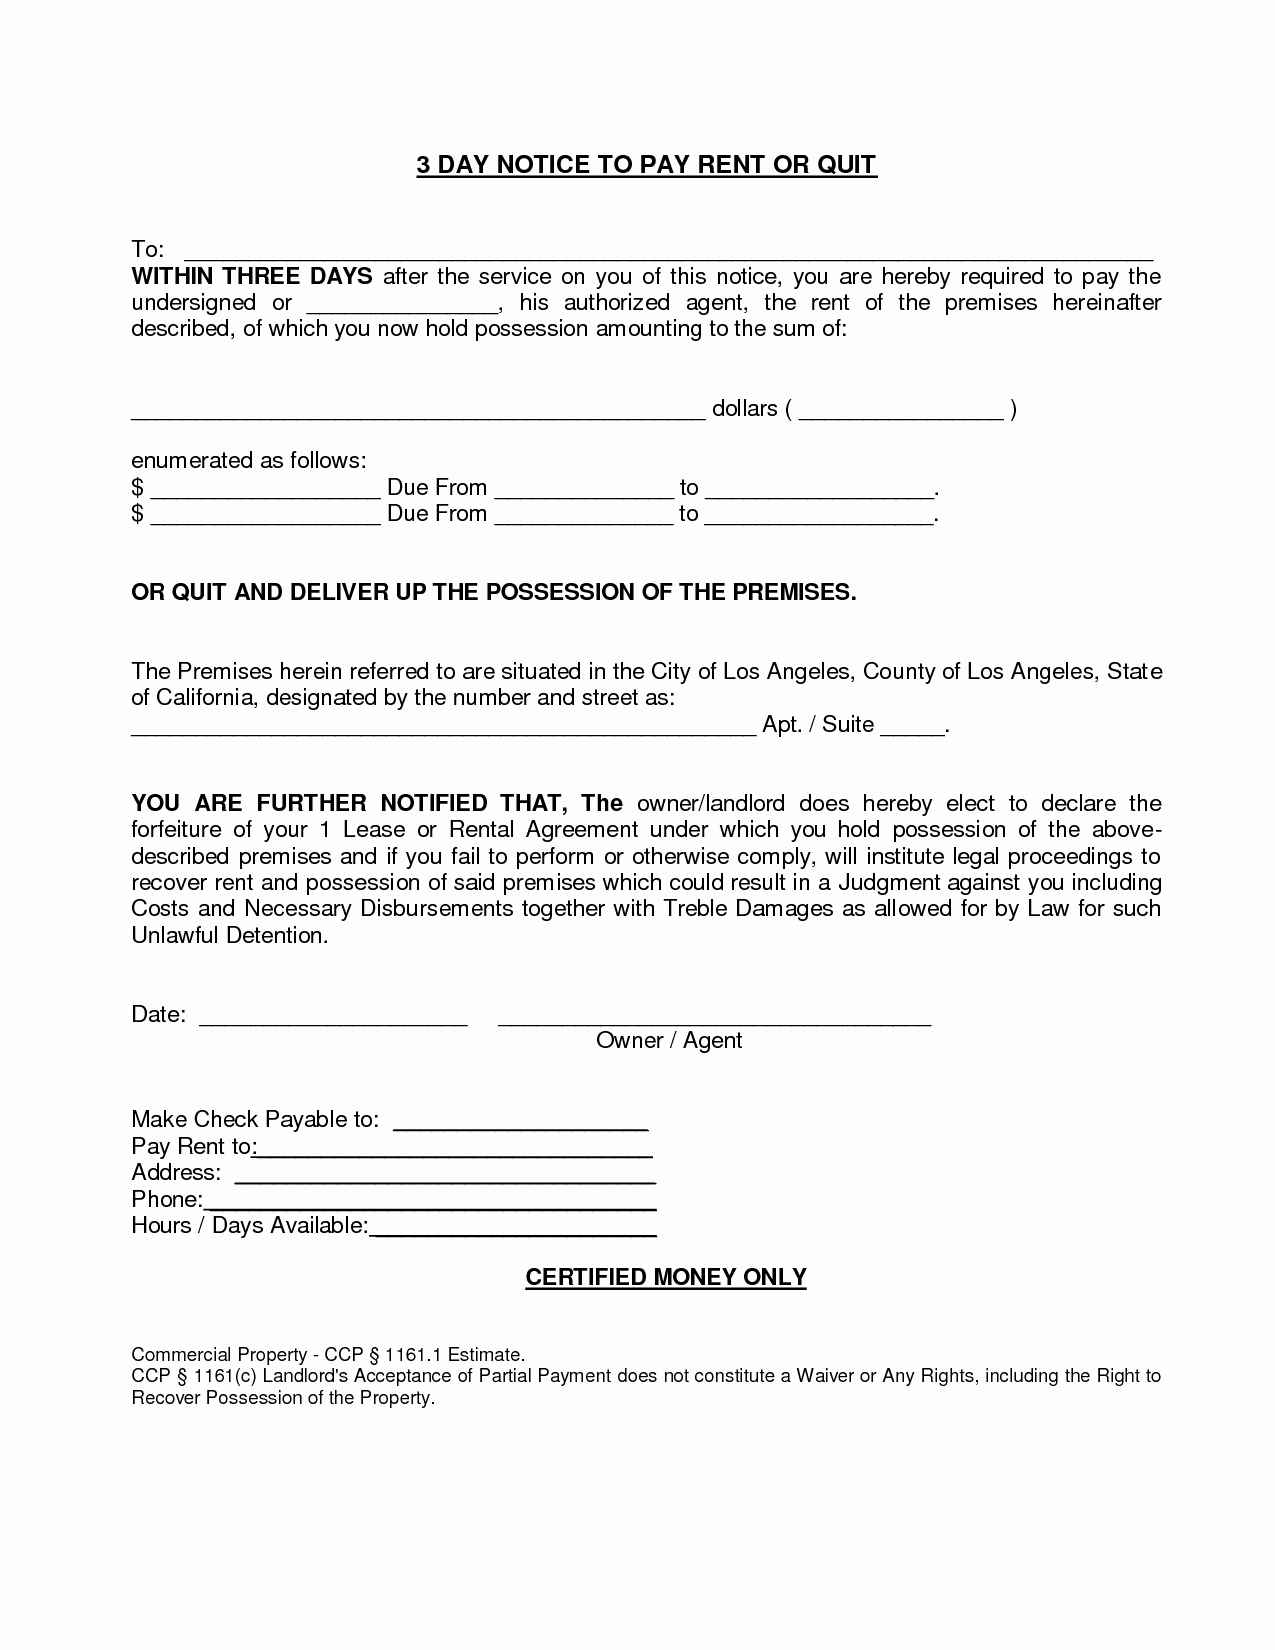 Notice to Pay or Vacate Luxury 10 Best Of 3 Day Notice by Landlord 3 Day Notice